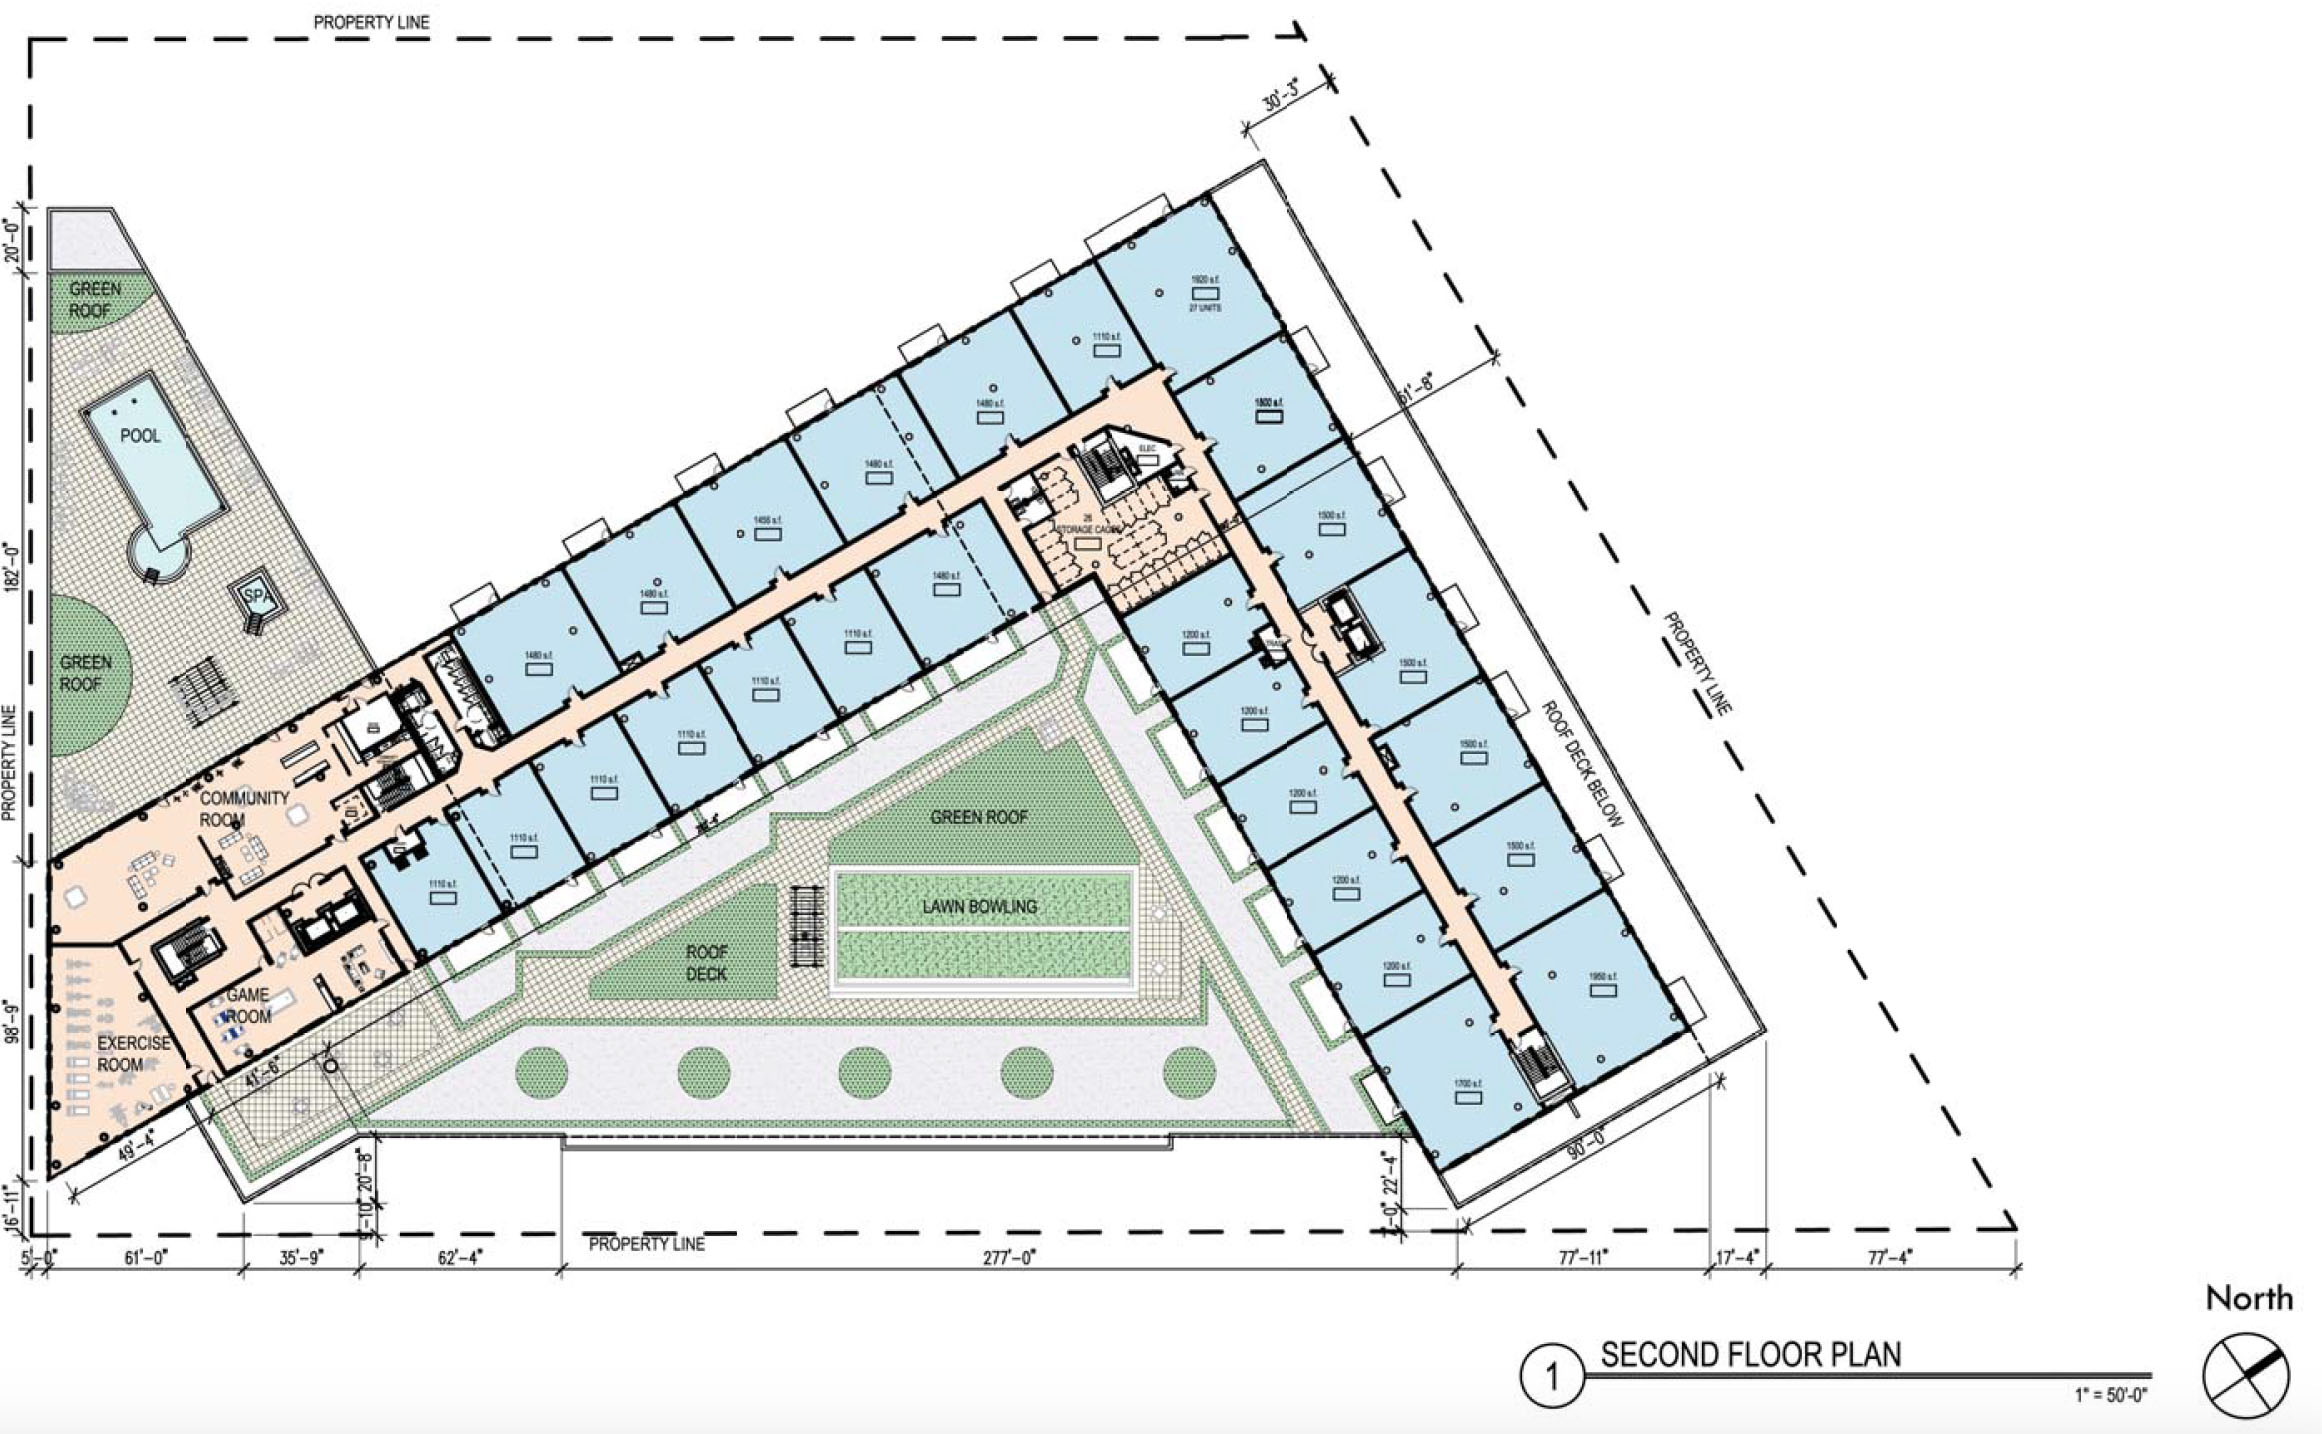 Second floor layout  |  Minneapolis Planning Commission